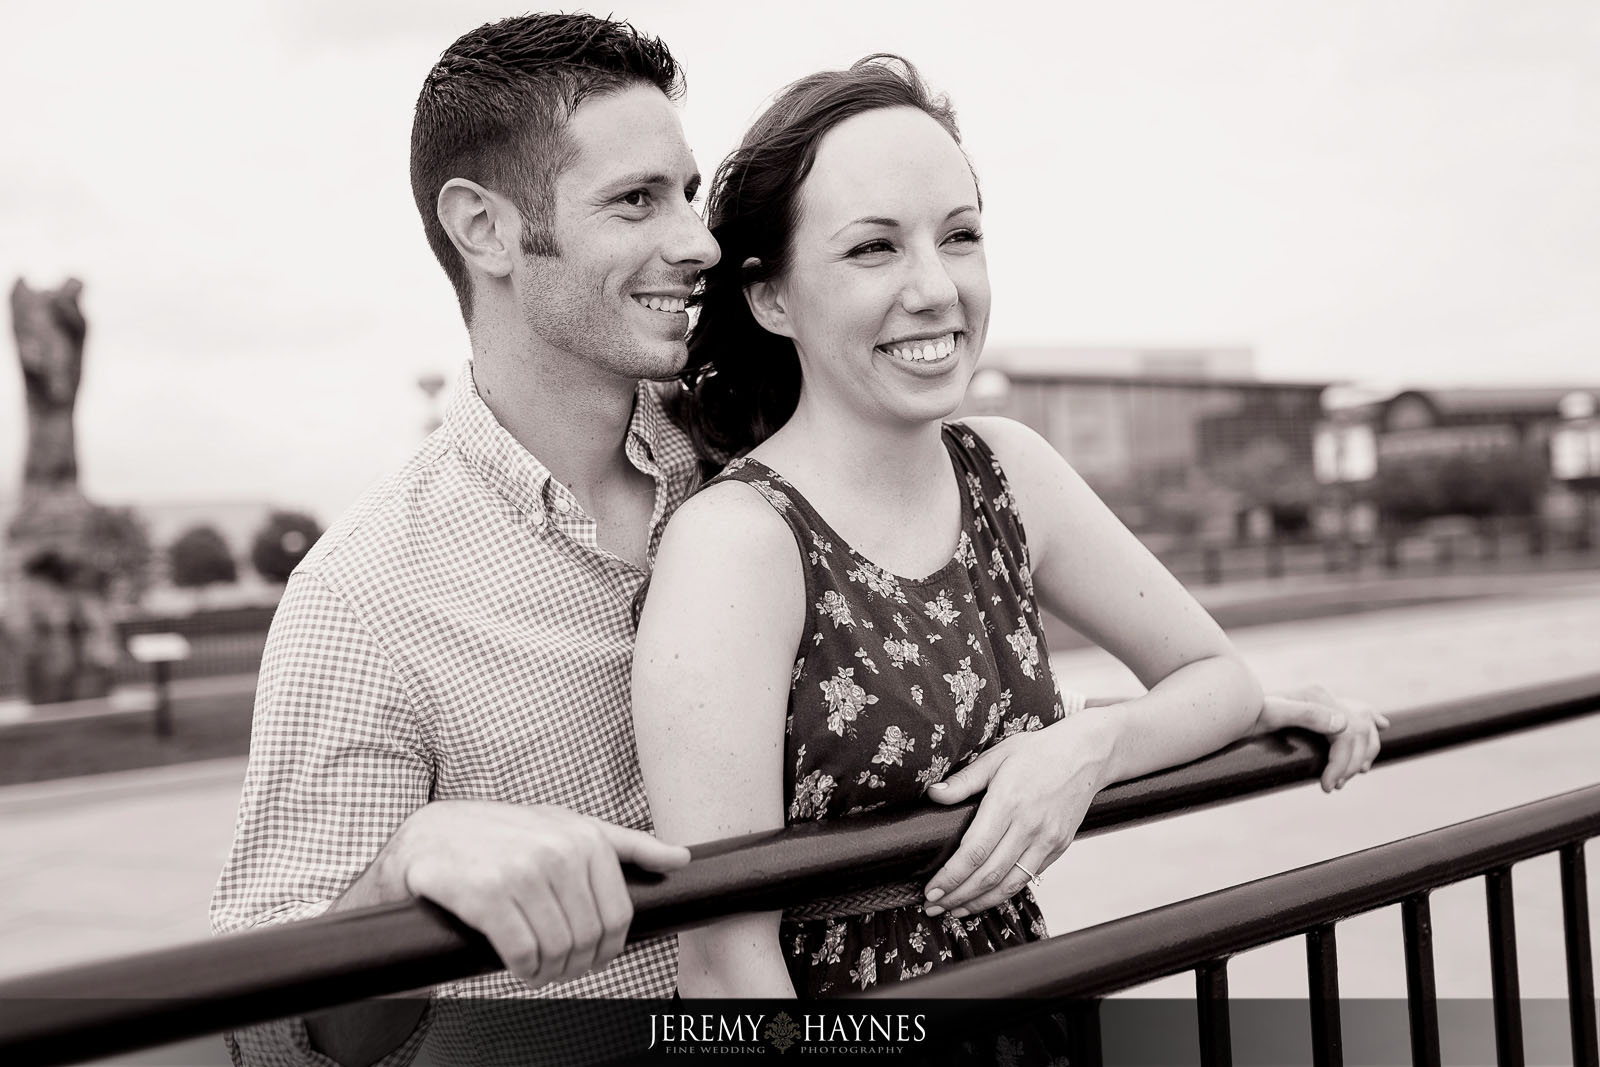 fun-bridge-engagement-photo-ideas-jeremy-haynes-photography.jpg